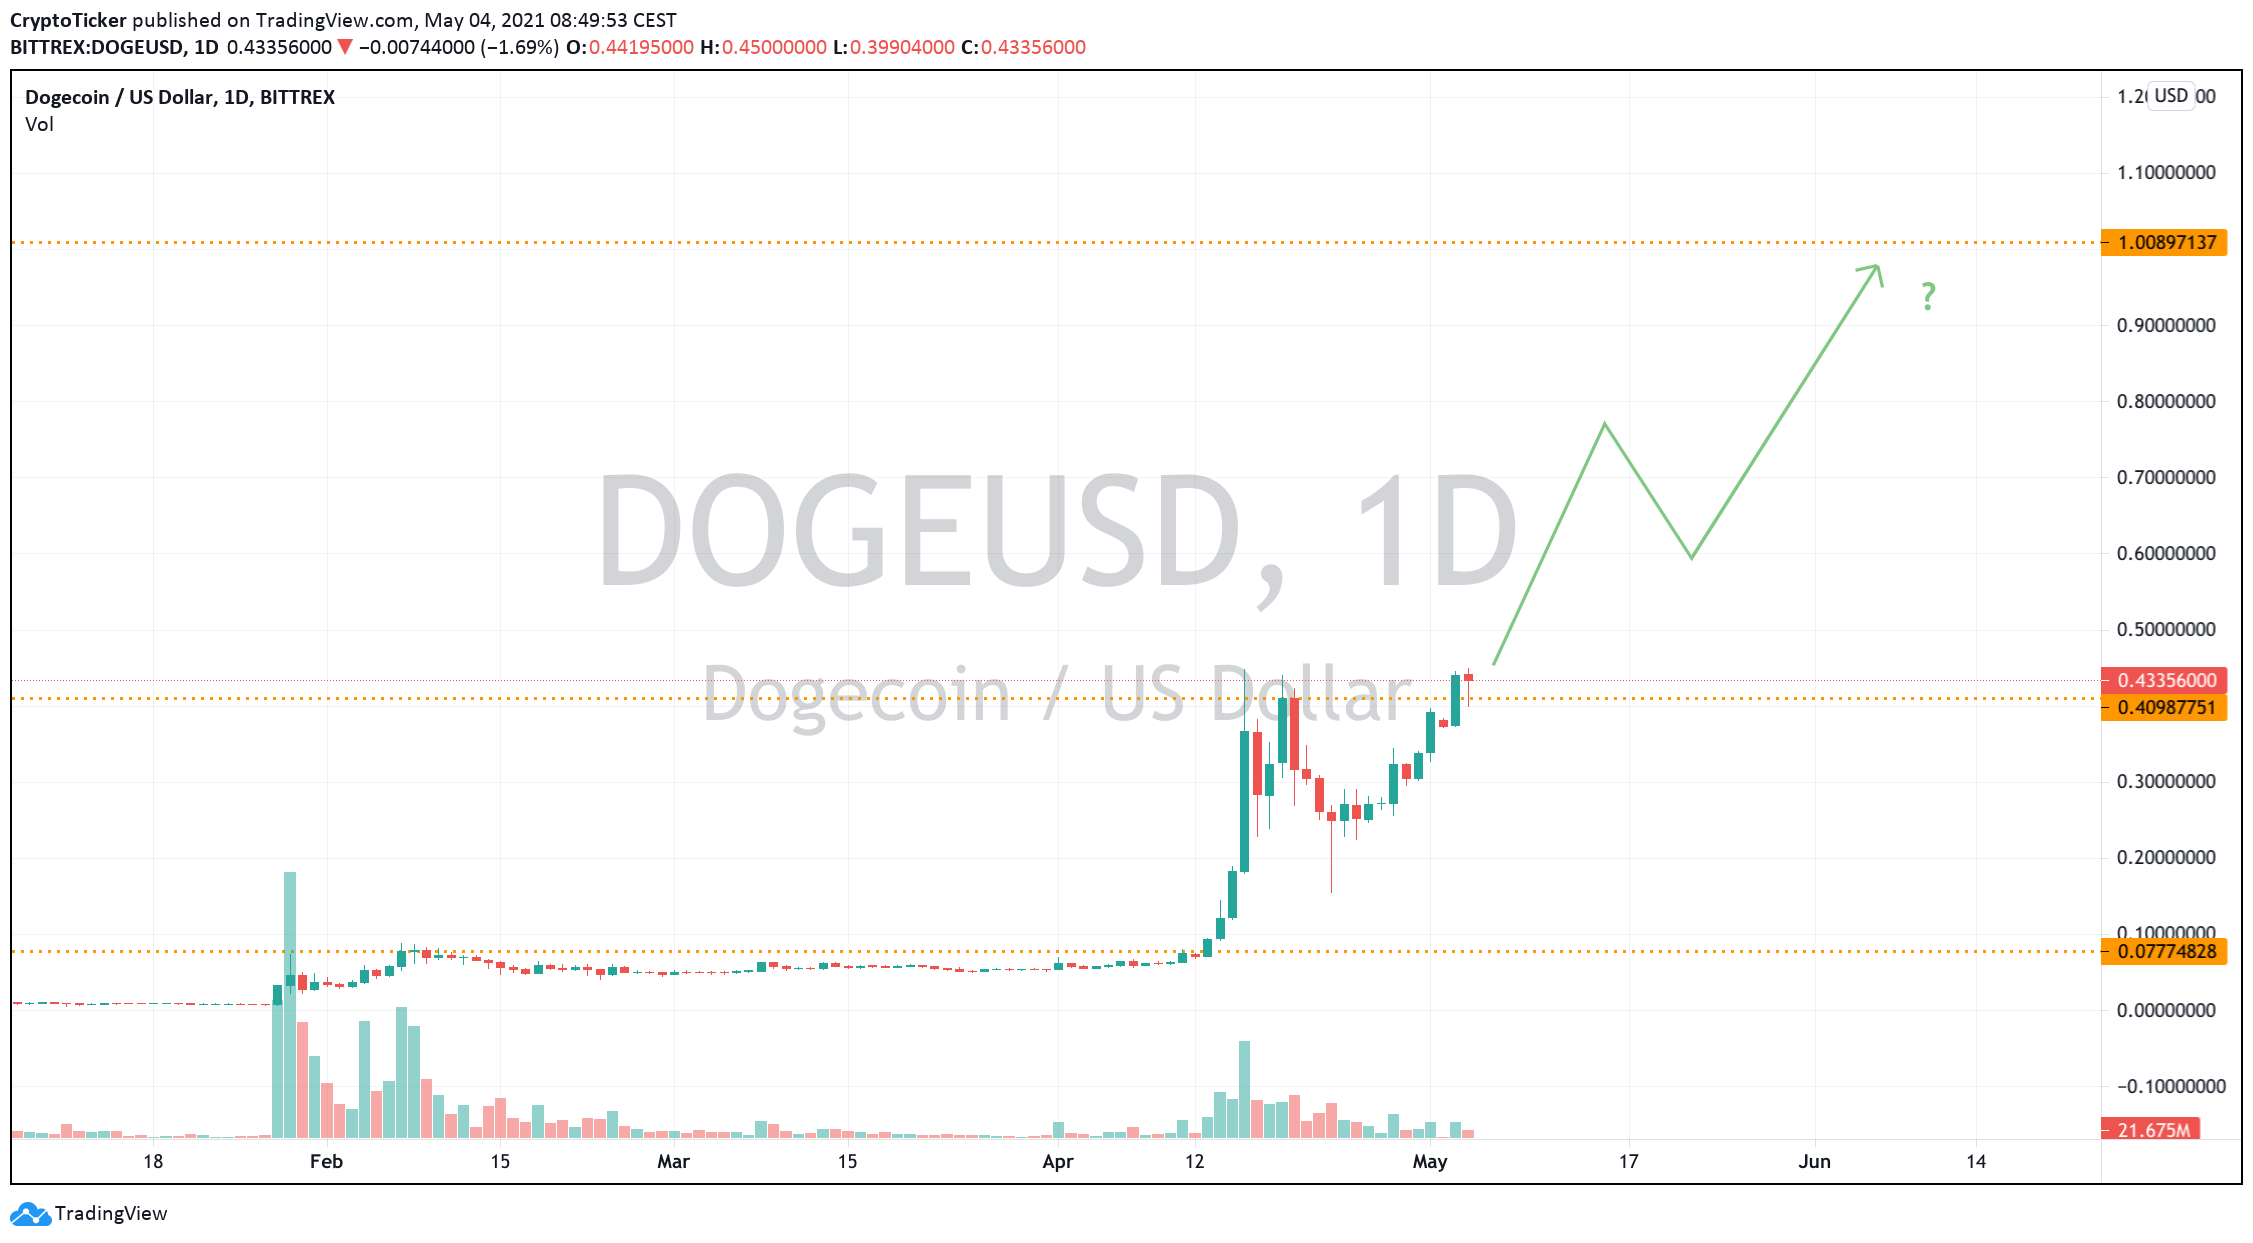 DOGE/USD 1-day chart showing Doge's potential in reaching 1$